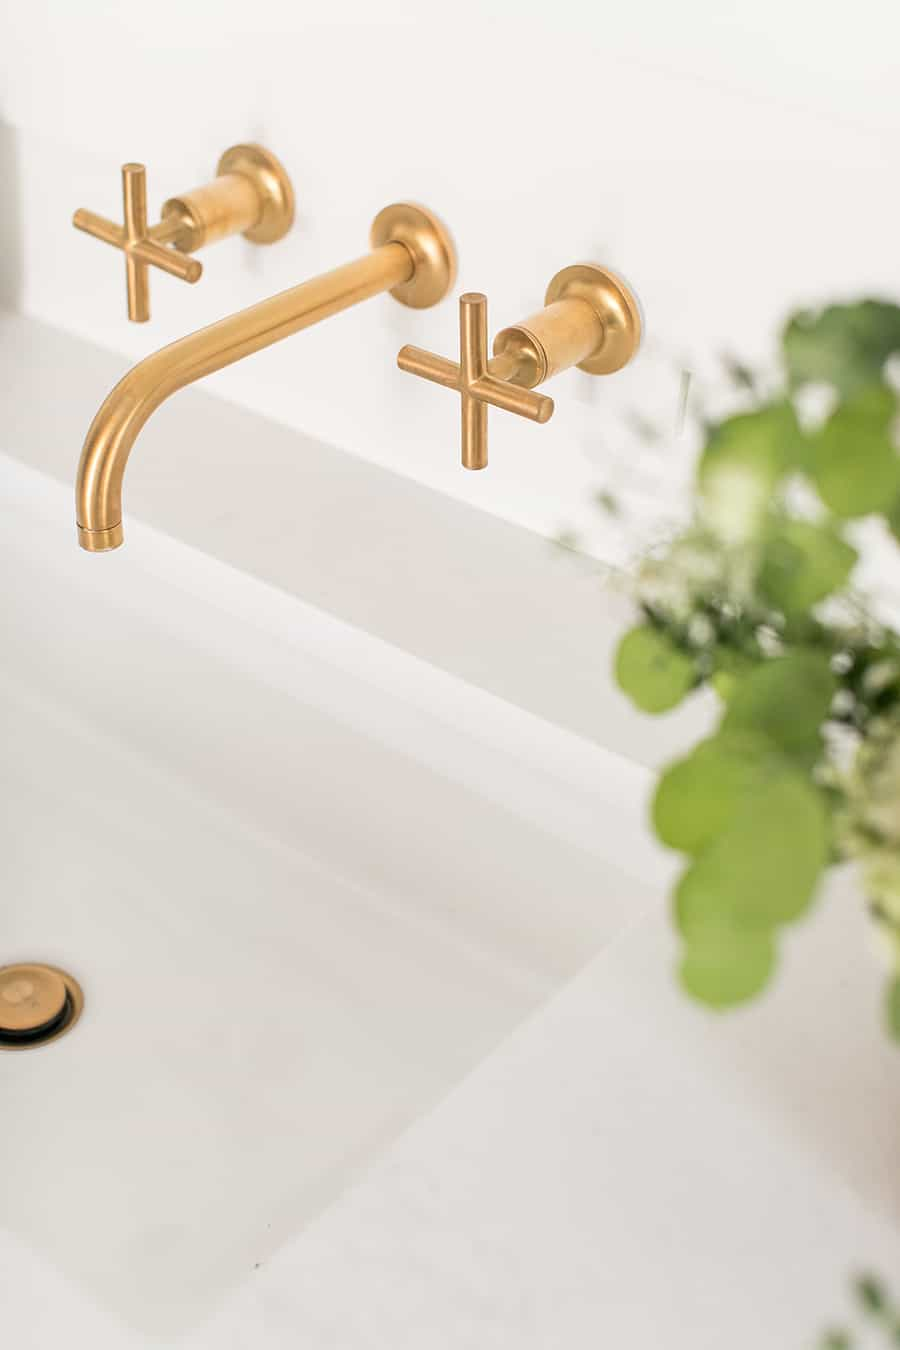 Gold Kohler facet in modern bathroom